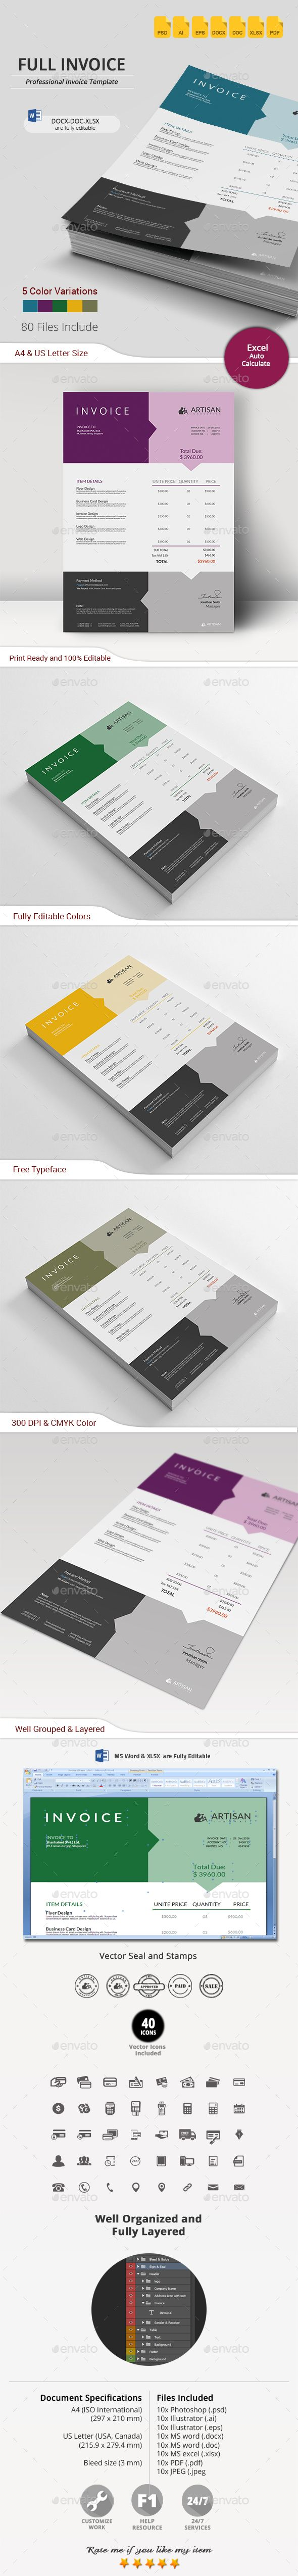 Full Invoice  #elegant #graphic #indesign • Available here → http://graphicriver.net/item/full-invoice/15780121?ref=pxcr